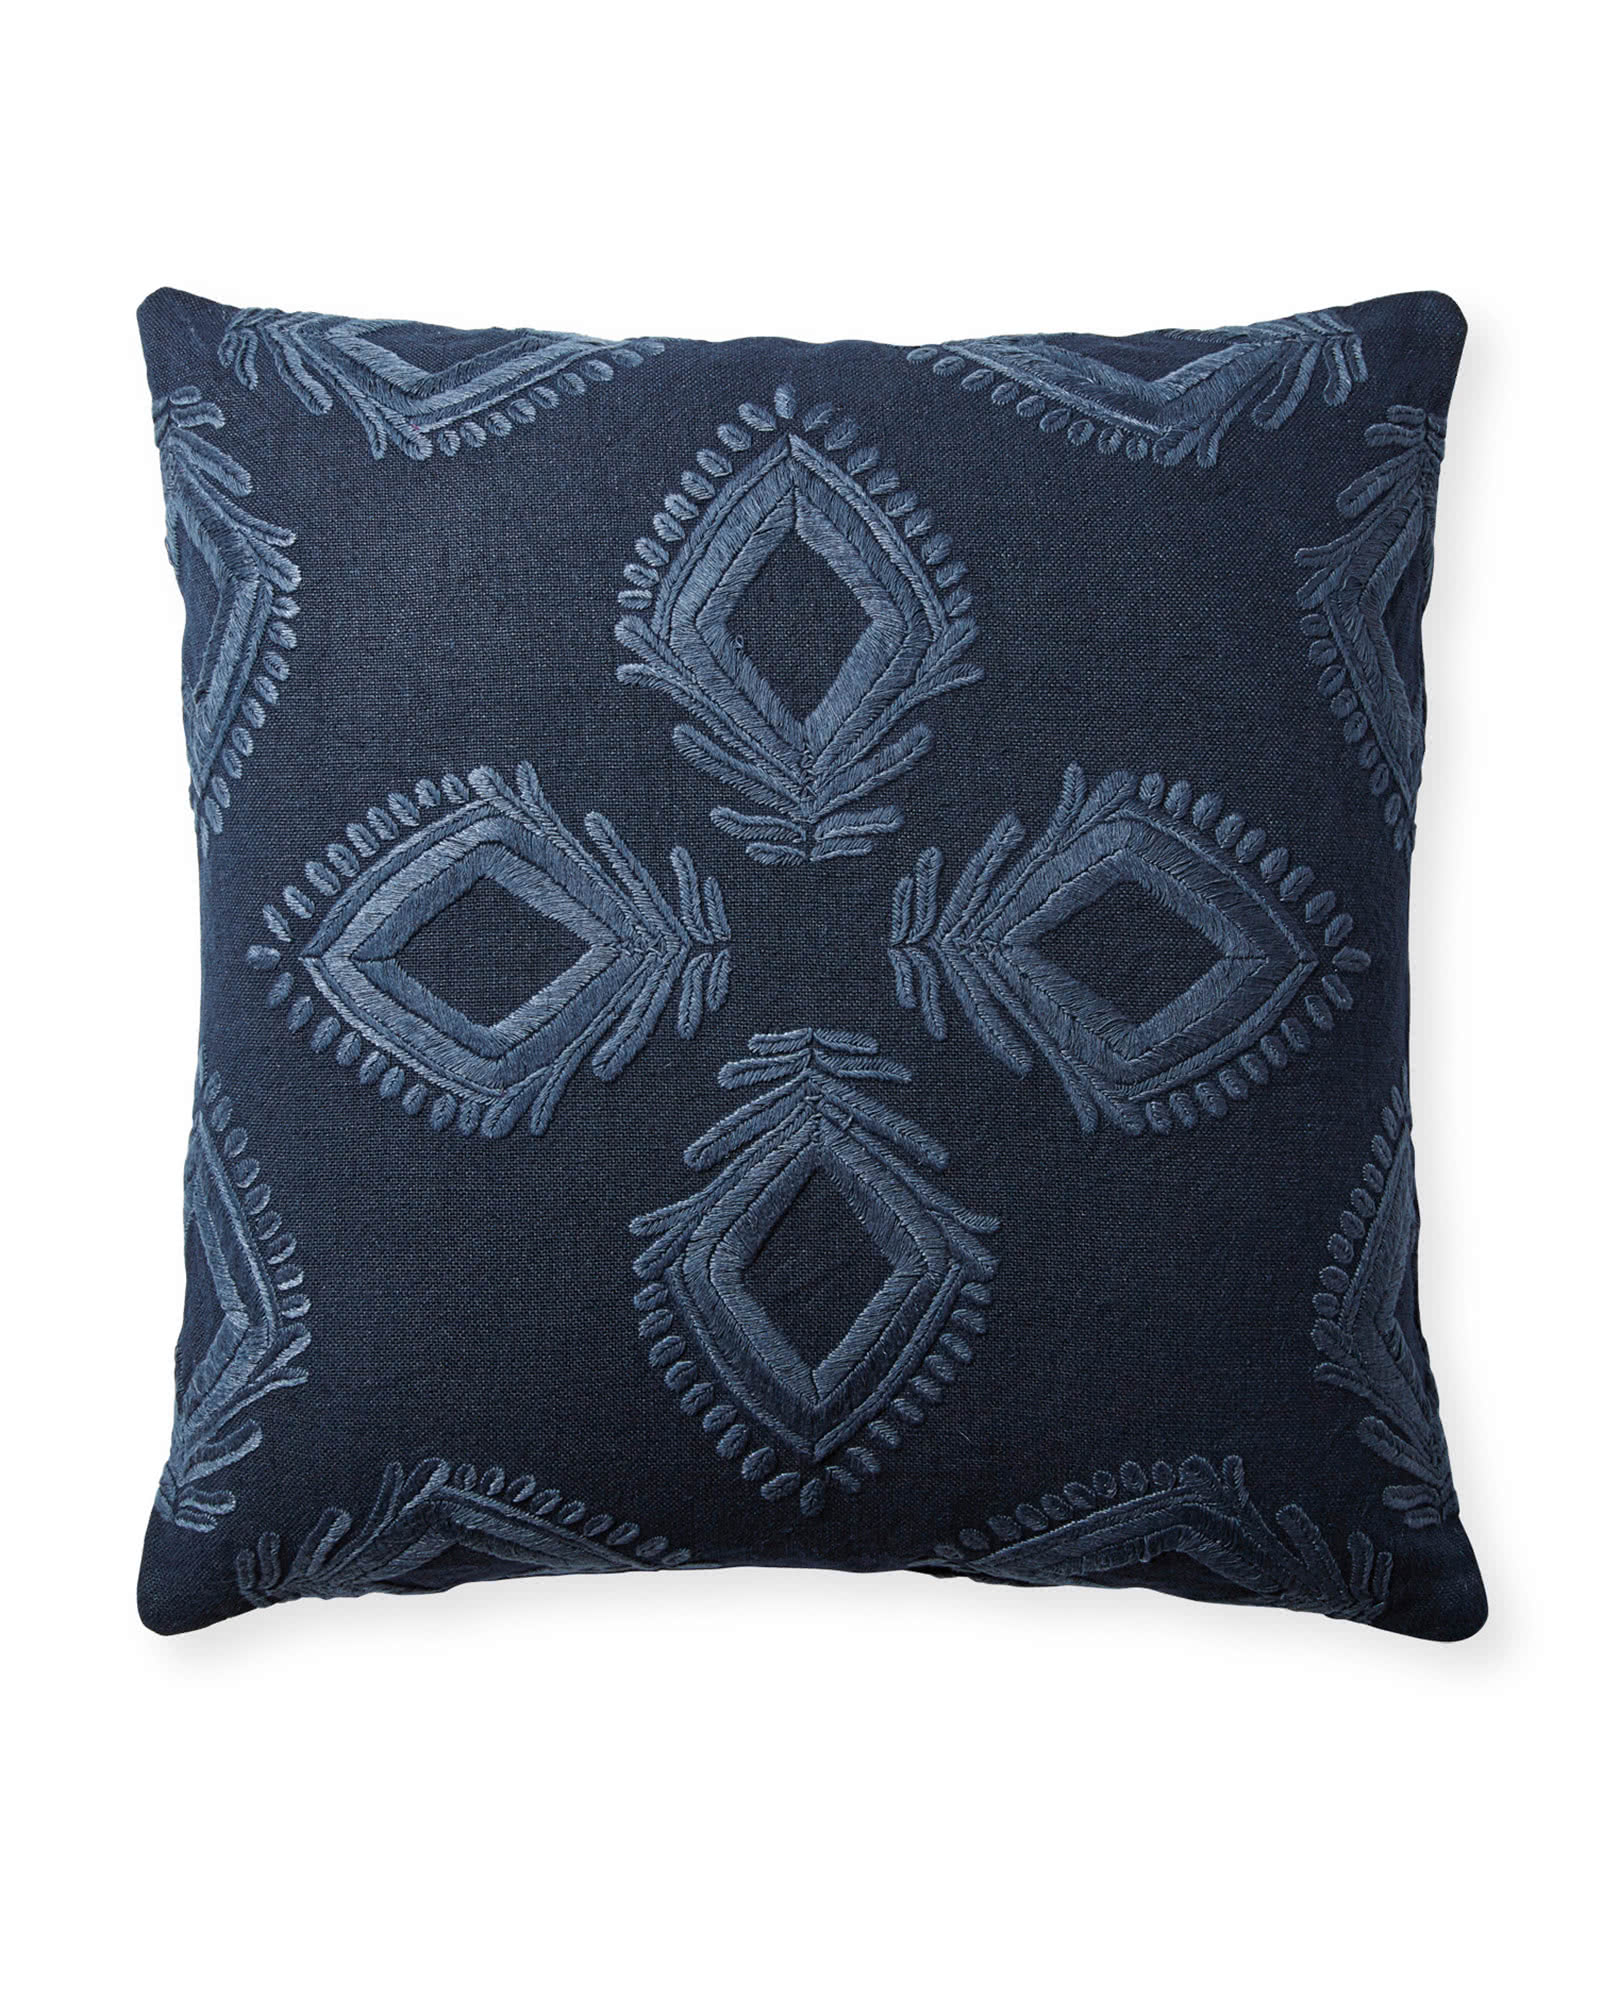 Leighton Pillow Cover, Midnight